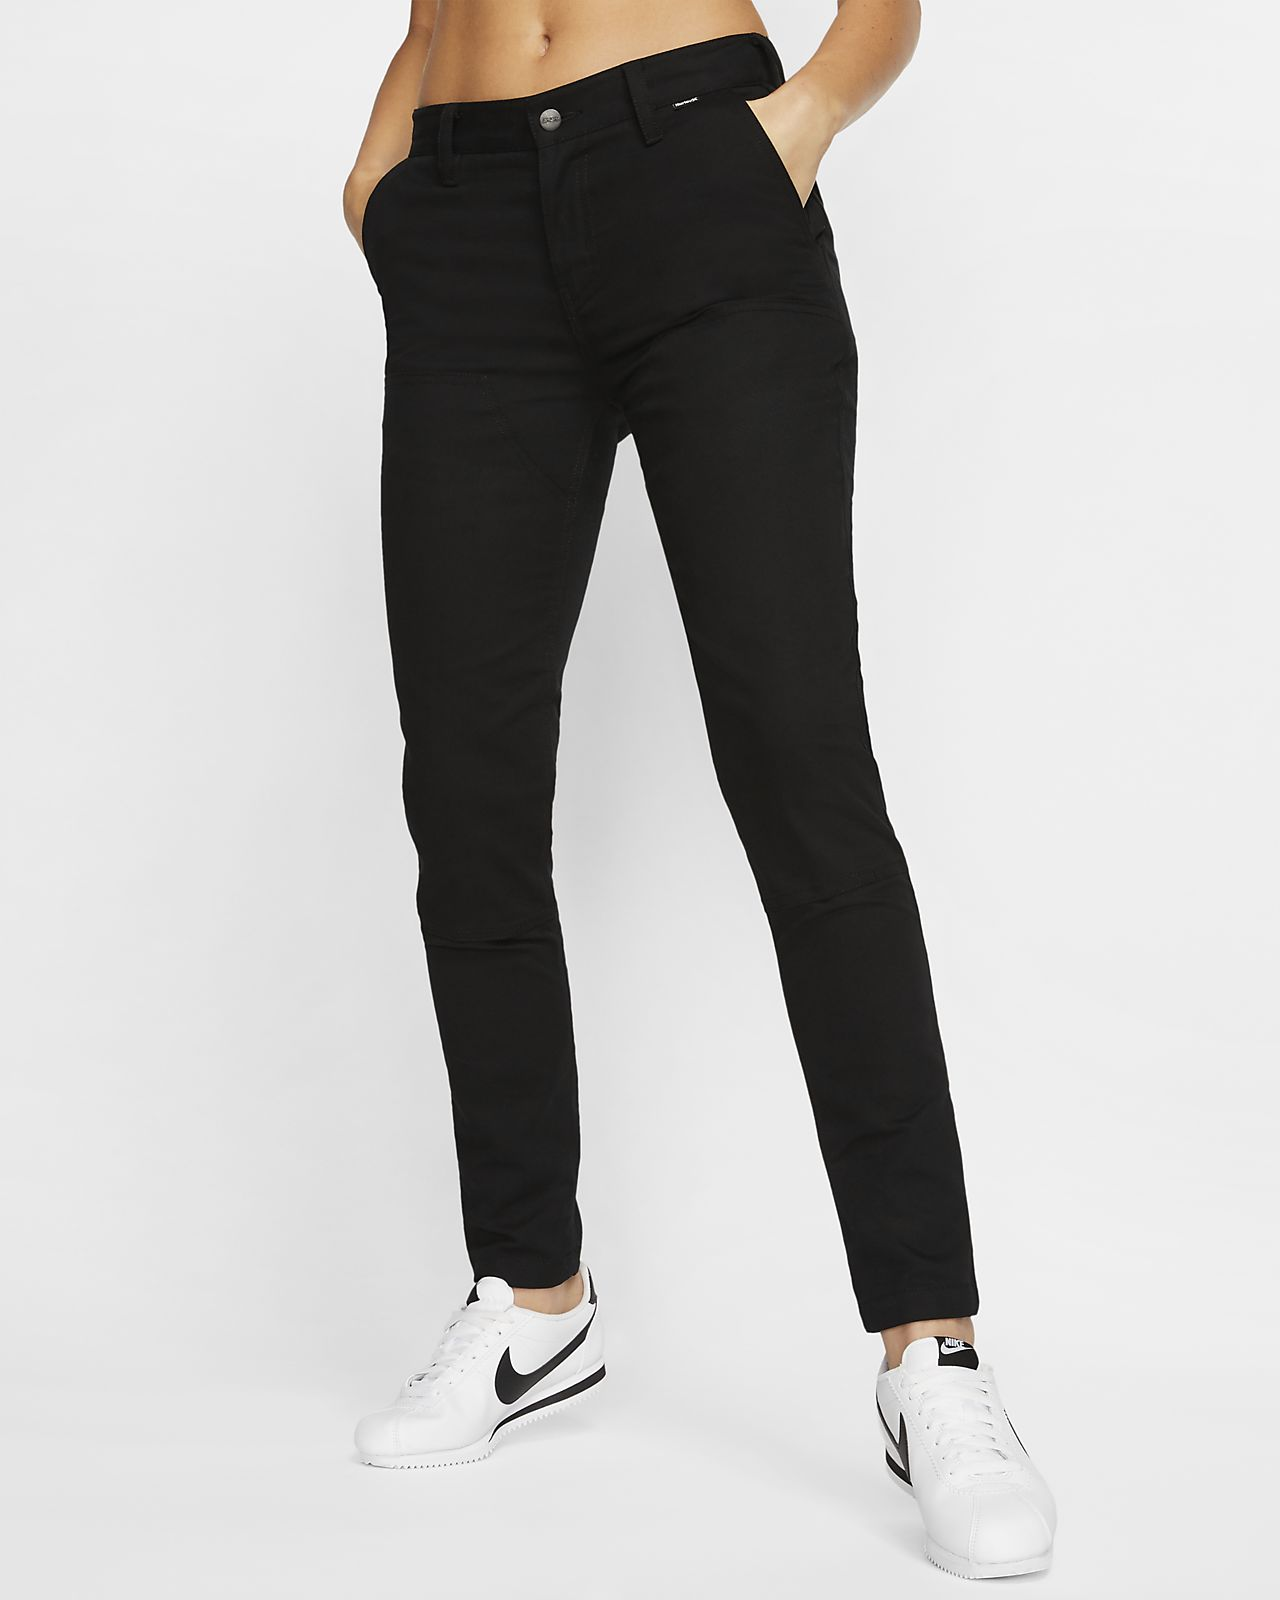 Pantalon Hurley x Carhartt Skinny Double Front pour Femme